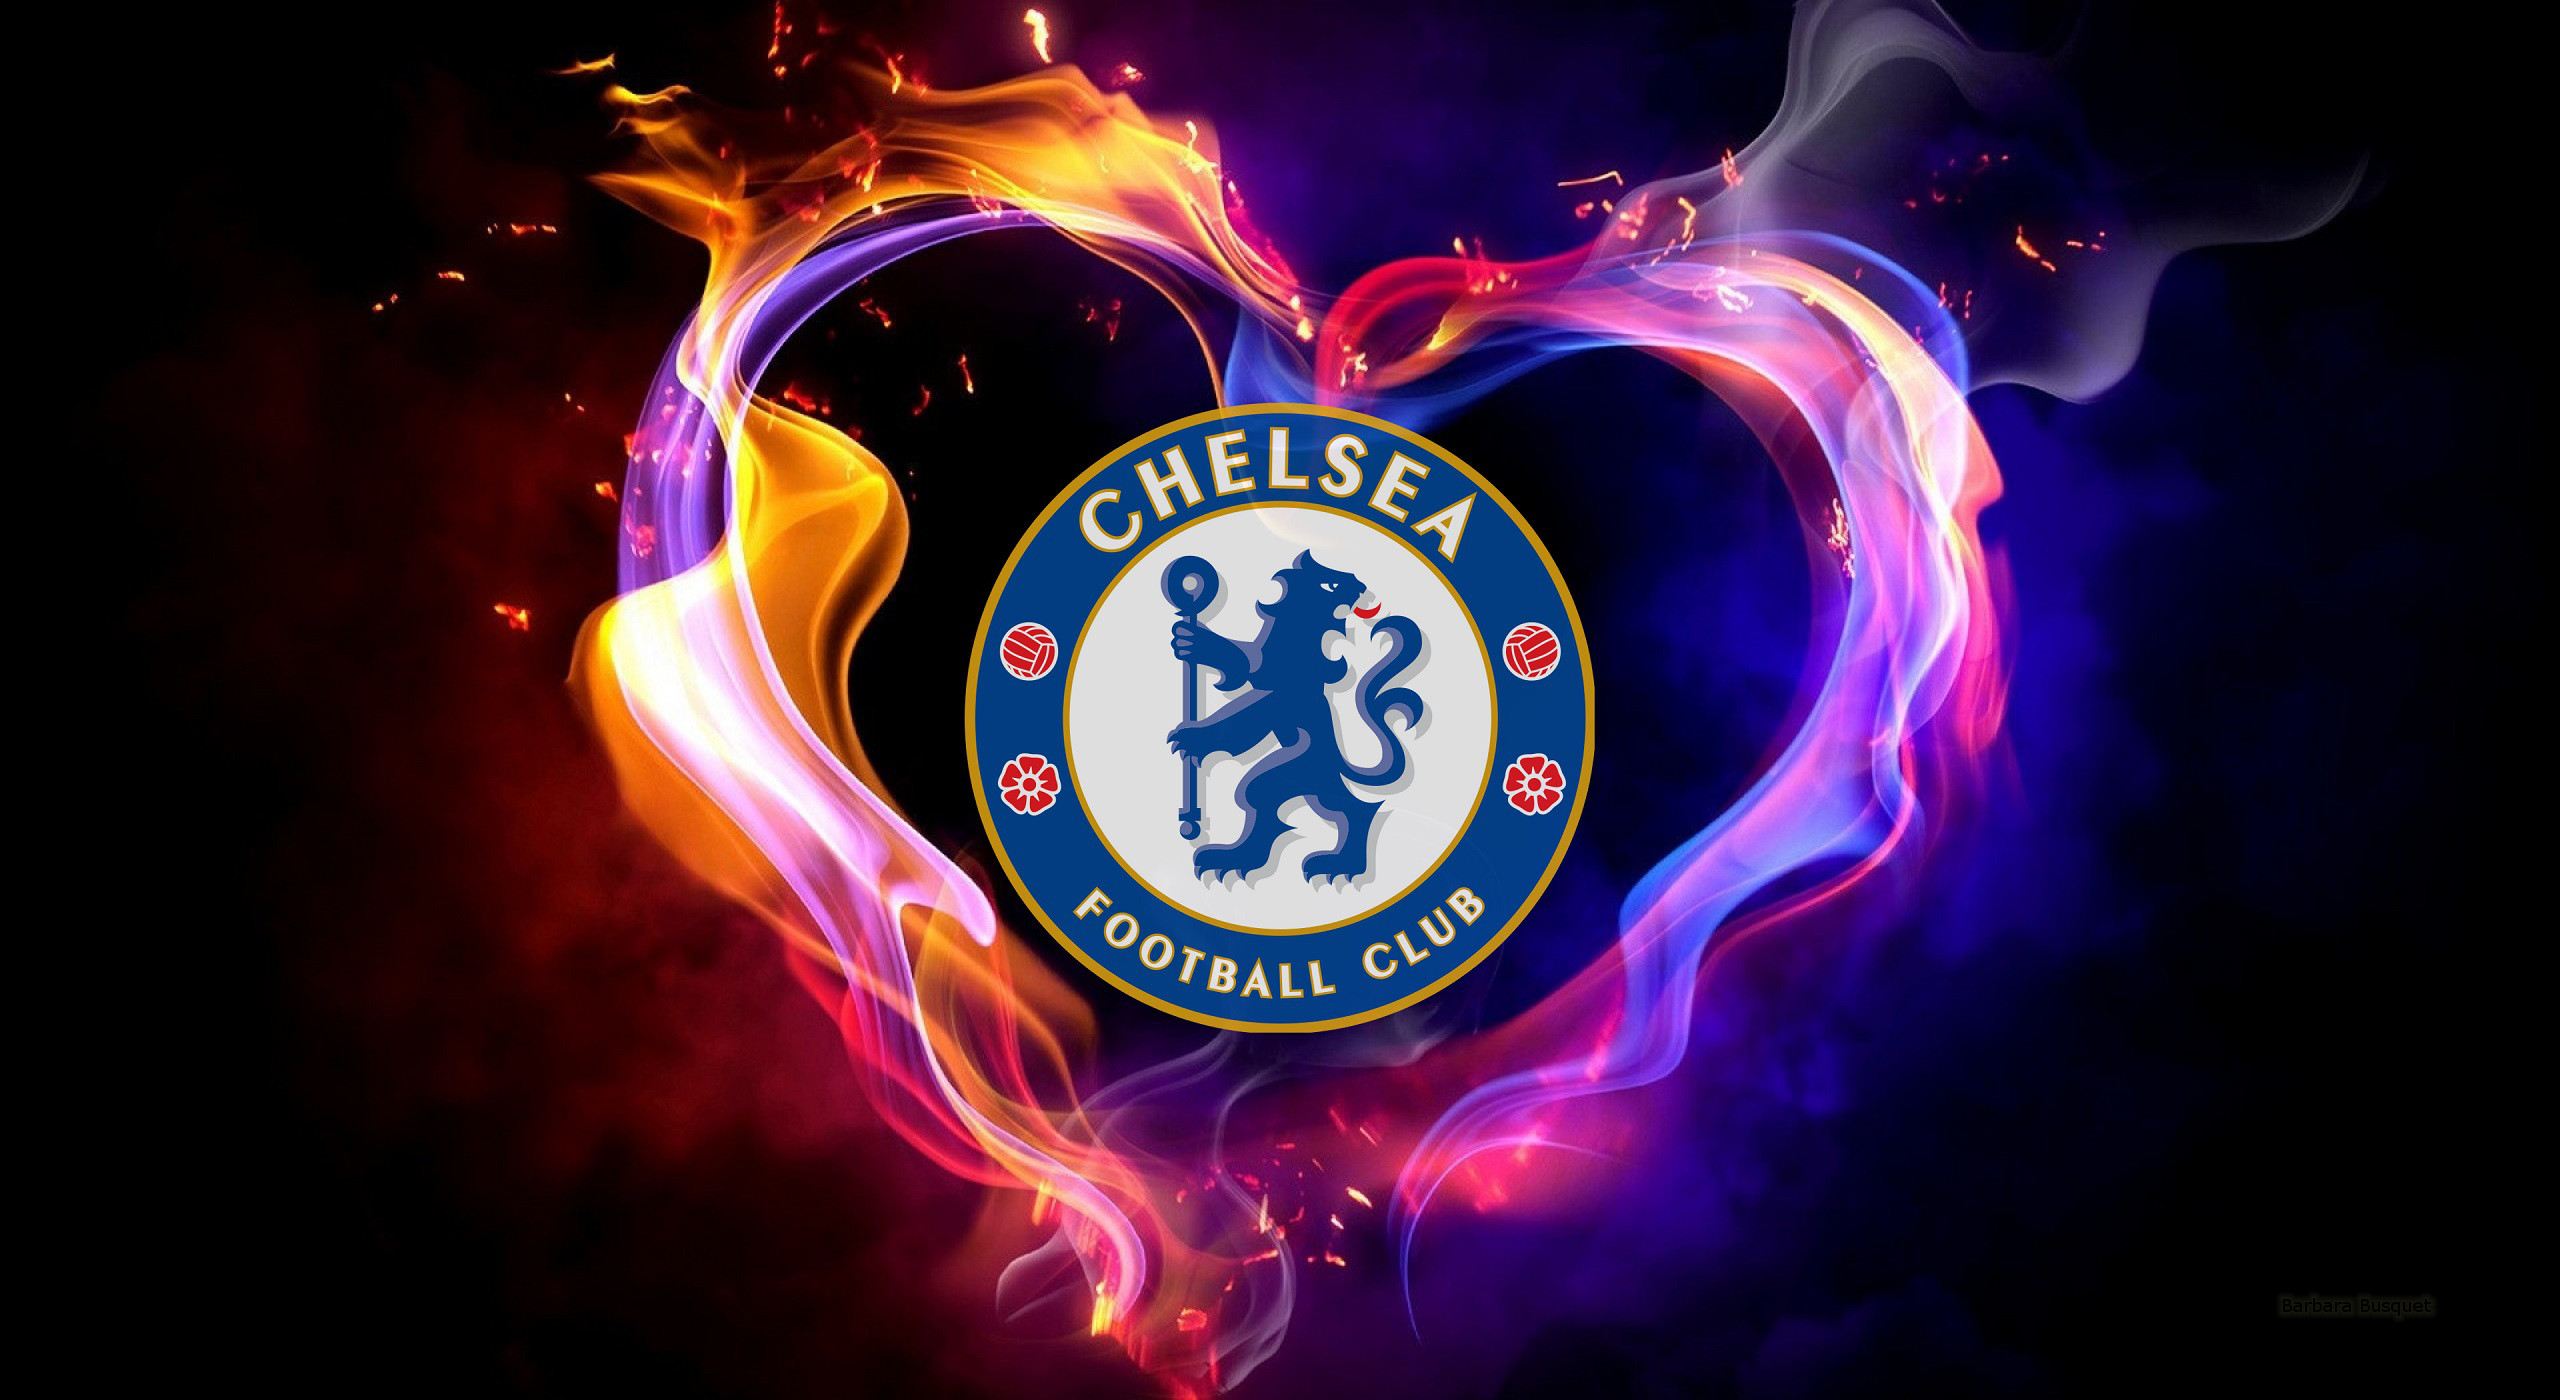 Chelsea F C Hd Wallpaper Background Image 2560x1400 Id 988978 Wallpaper Abyss